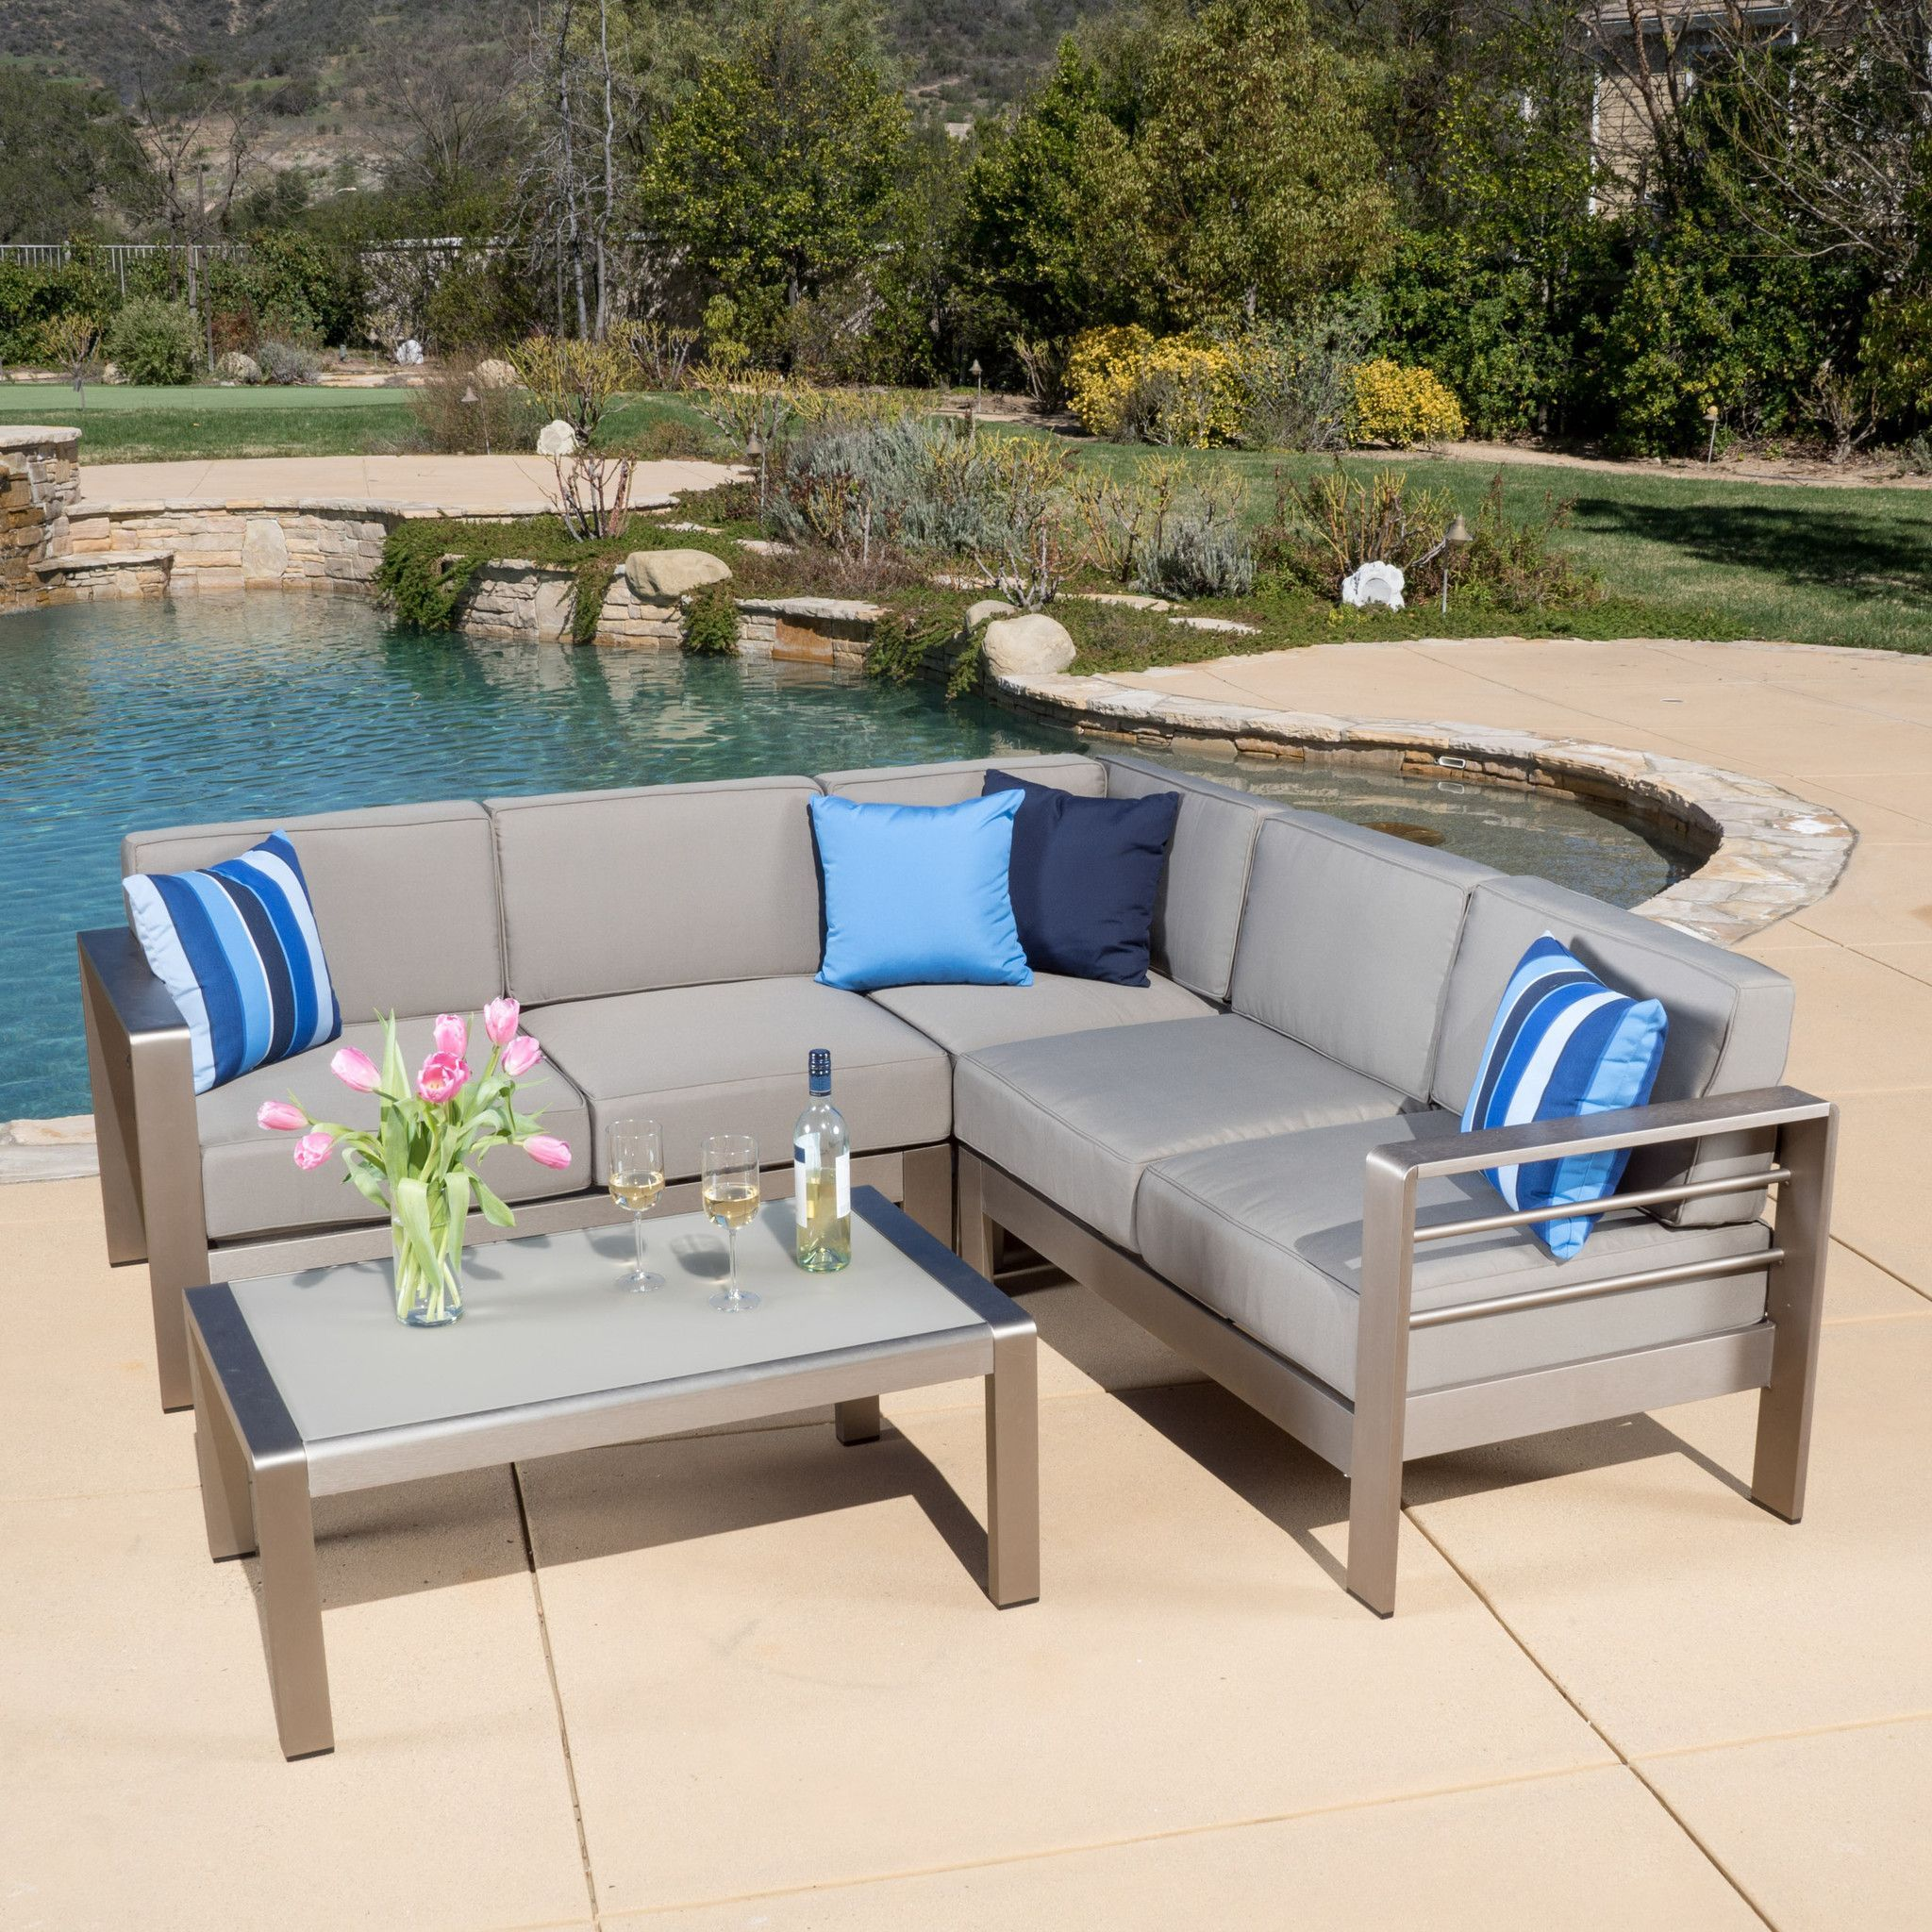 Charming Denise Austin Home Sonora Outdoor Aluminum 4 Piece Sofa Set With Cushions